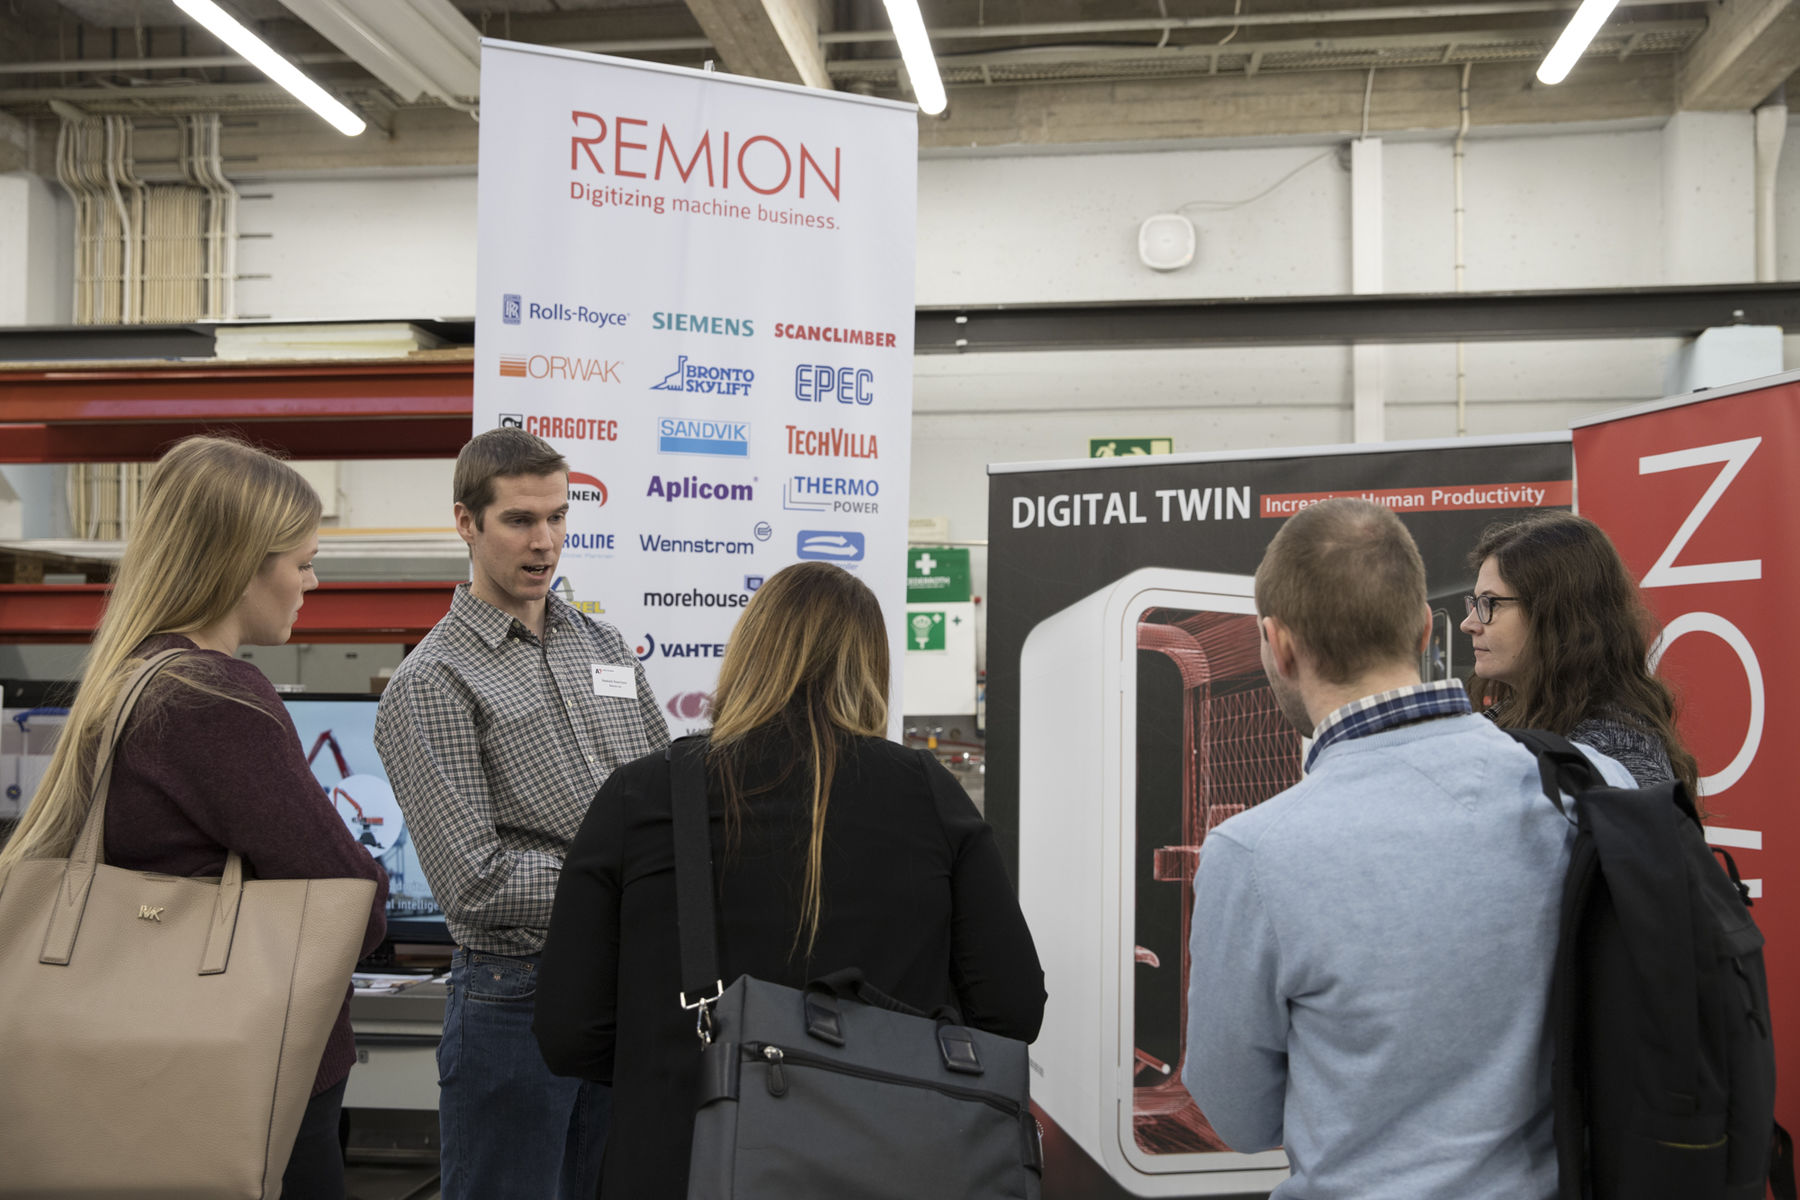 Visitors getting to know Remion's digital twin of a Smart Booth